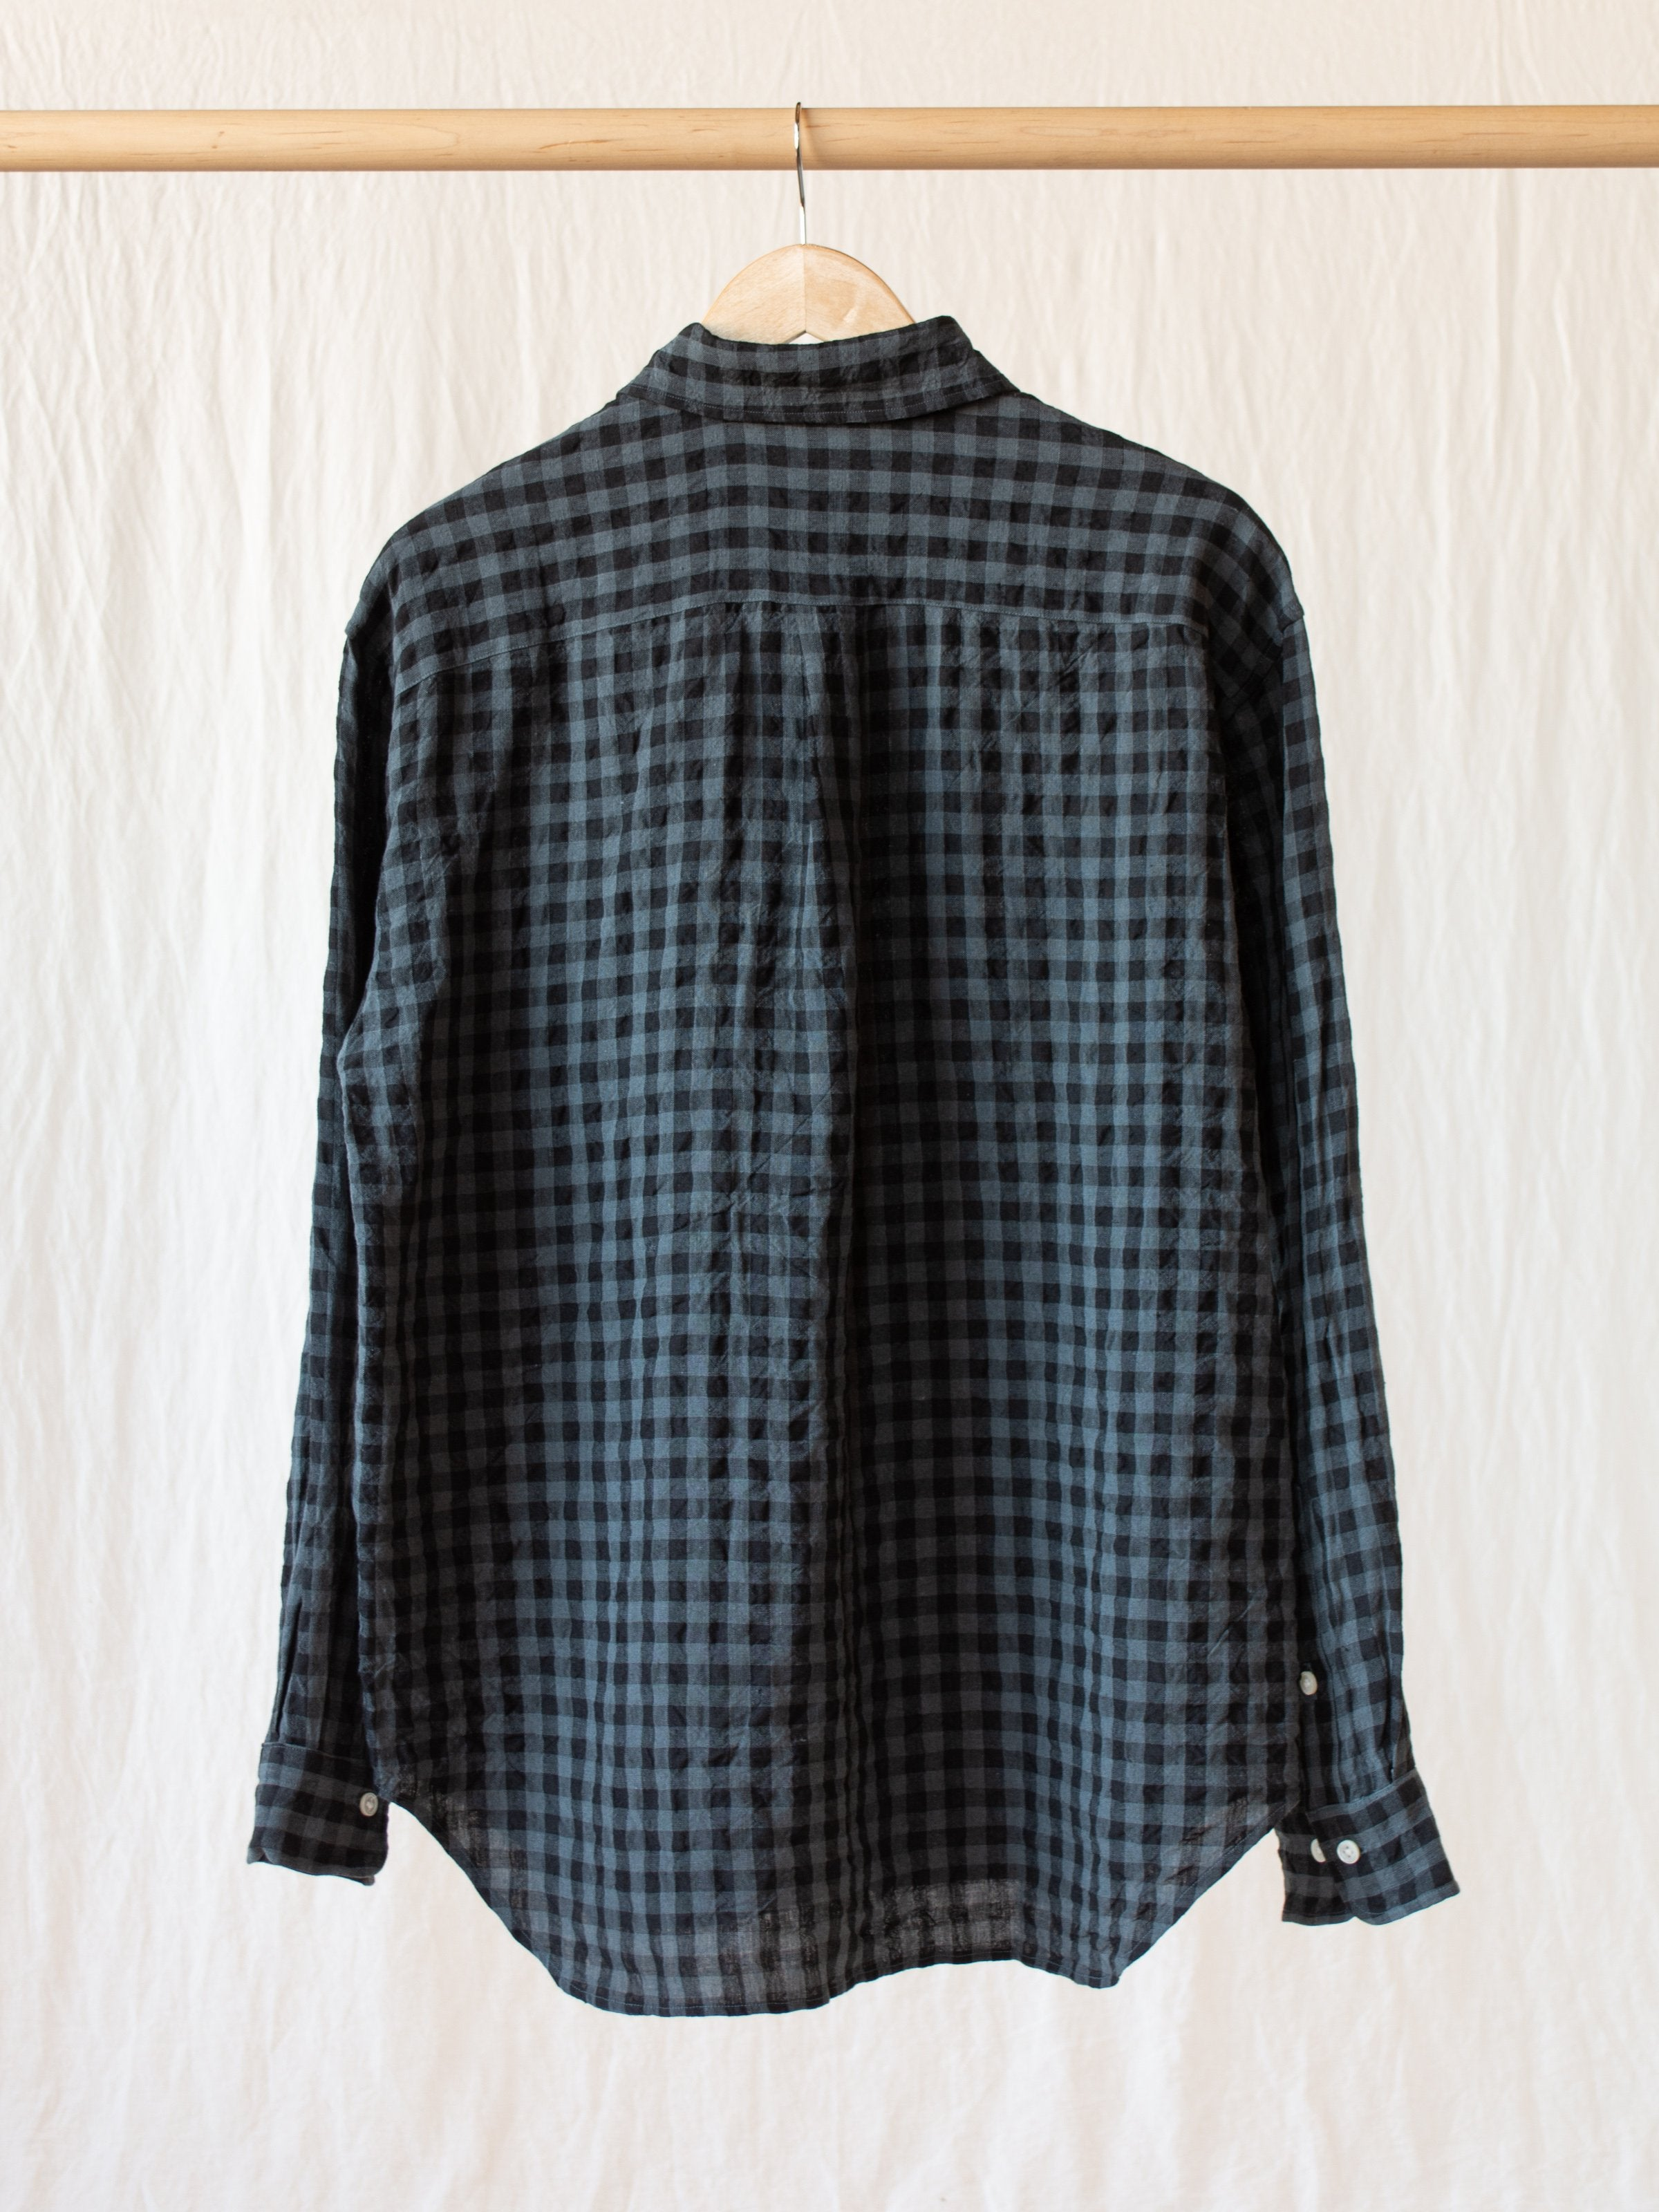 Namu Shop - ts(s) Irish Linen Baggy Shirt - Gray Gingham